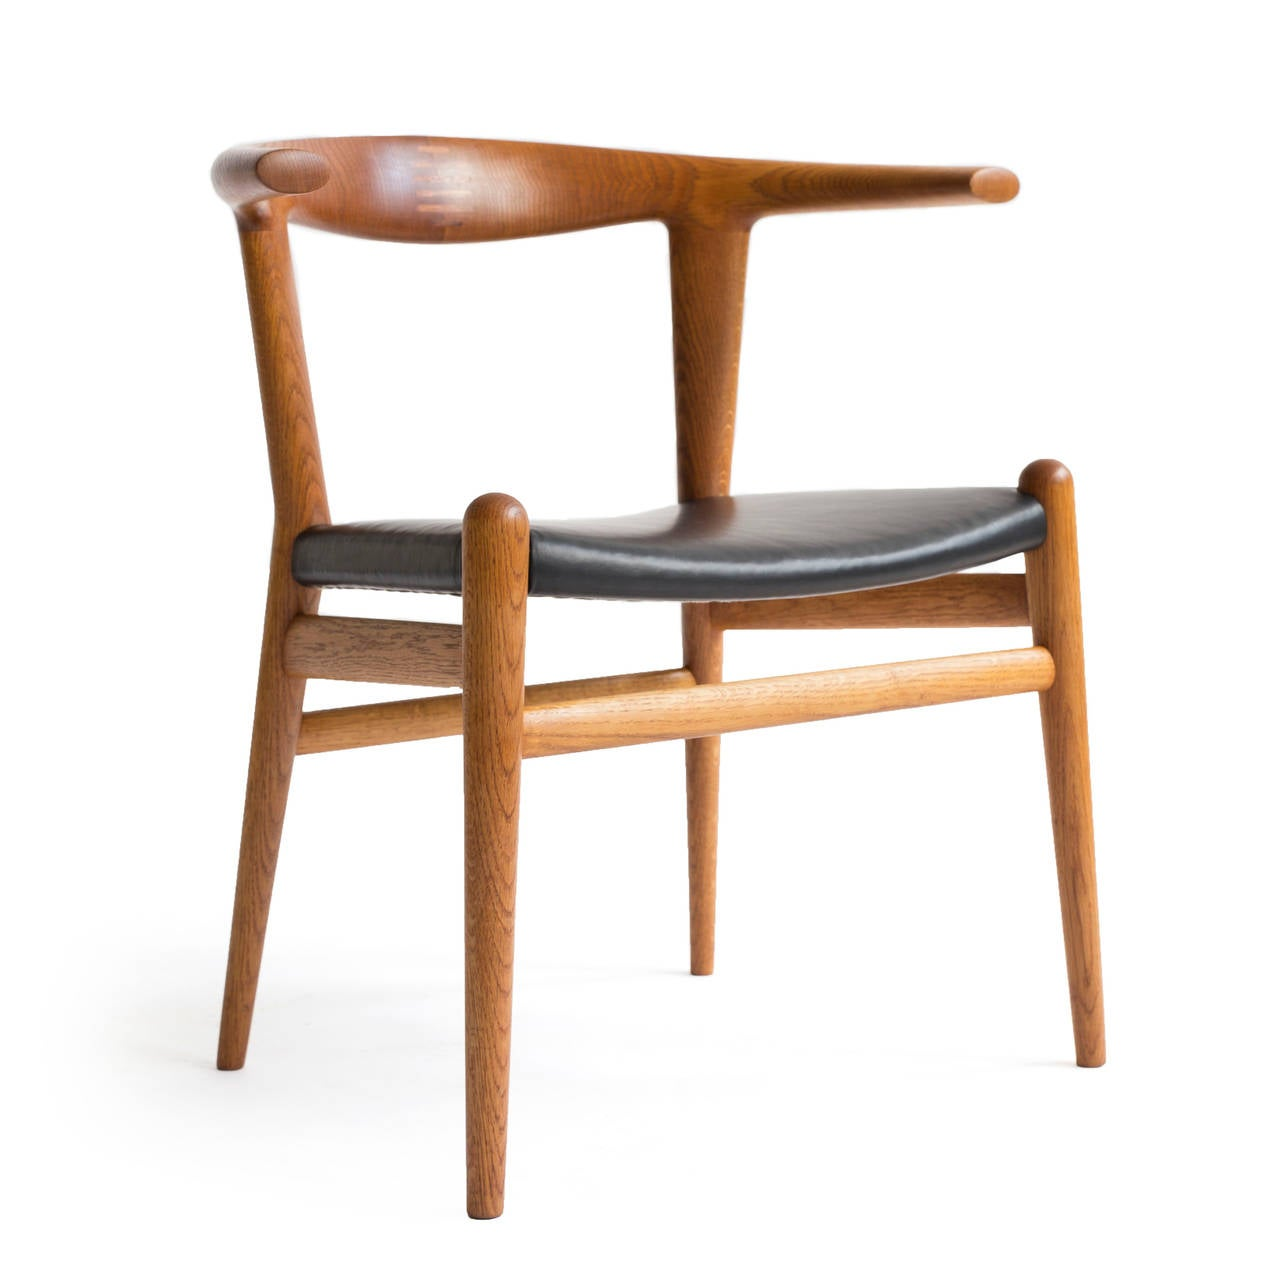 Hans J. Wegner 'Bull Chair' 2